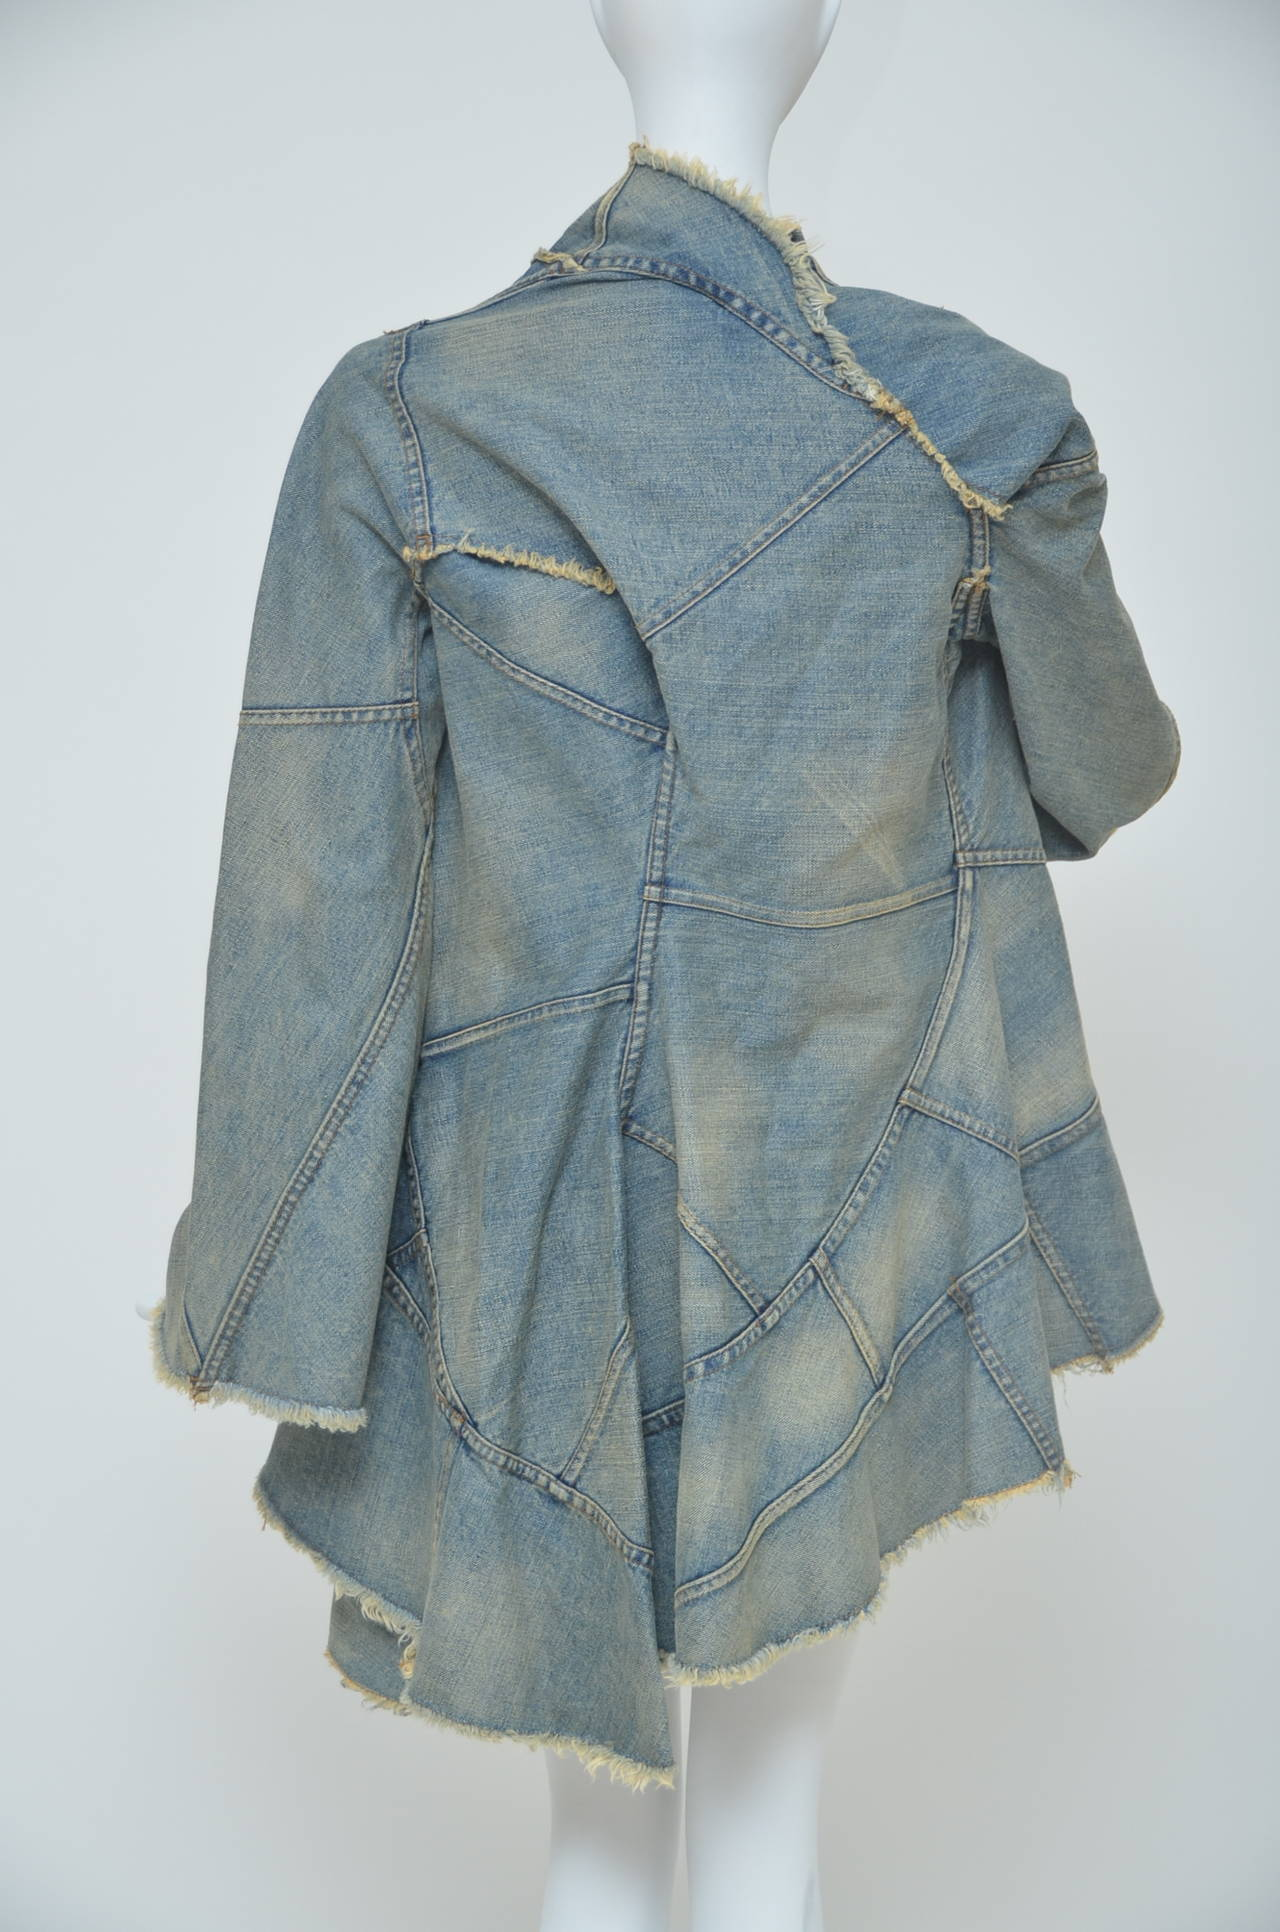 Junya Watanabe Comme Des Garcons Distressed Denim jacket  AD 2001  S 2